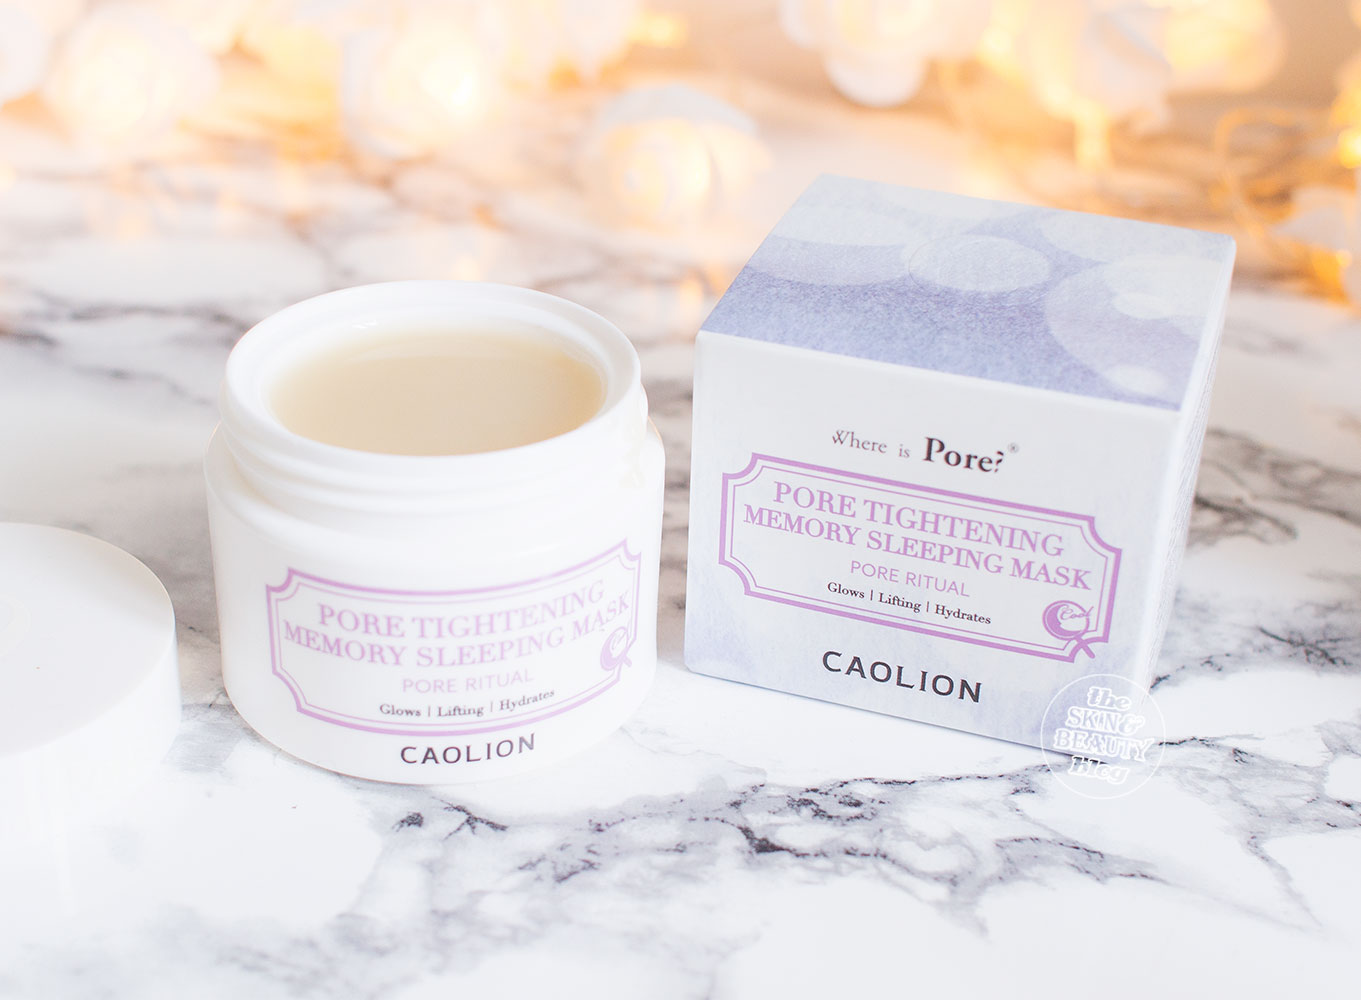 Caolion Pore Tightening Memory Sleeping Mask Review Peach & Lily